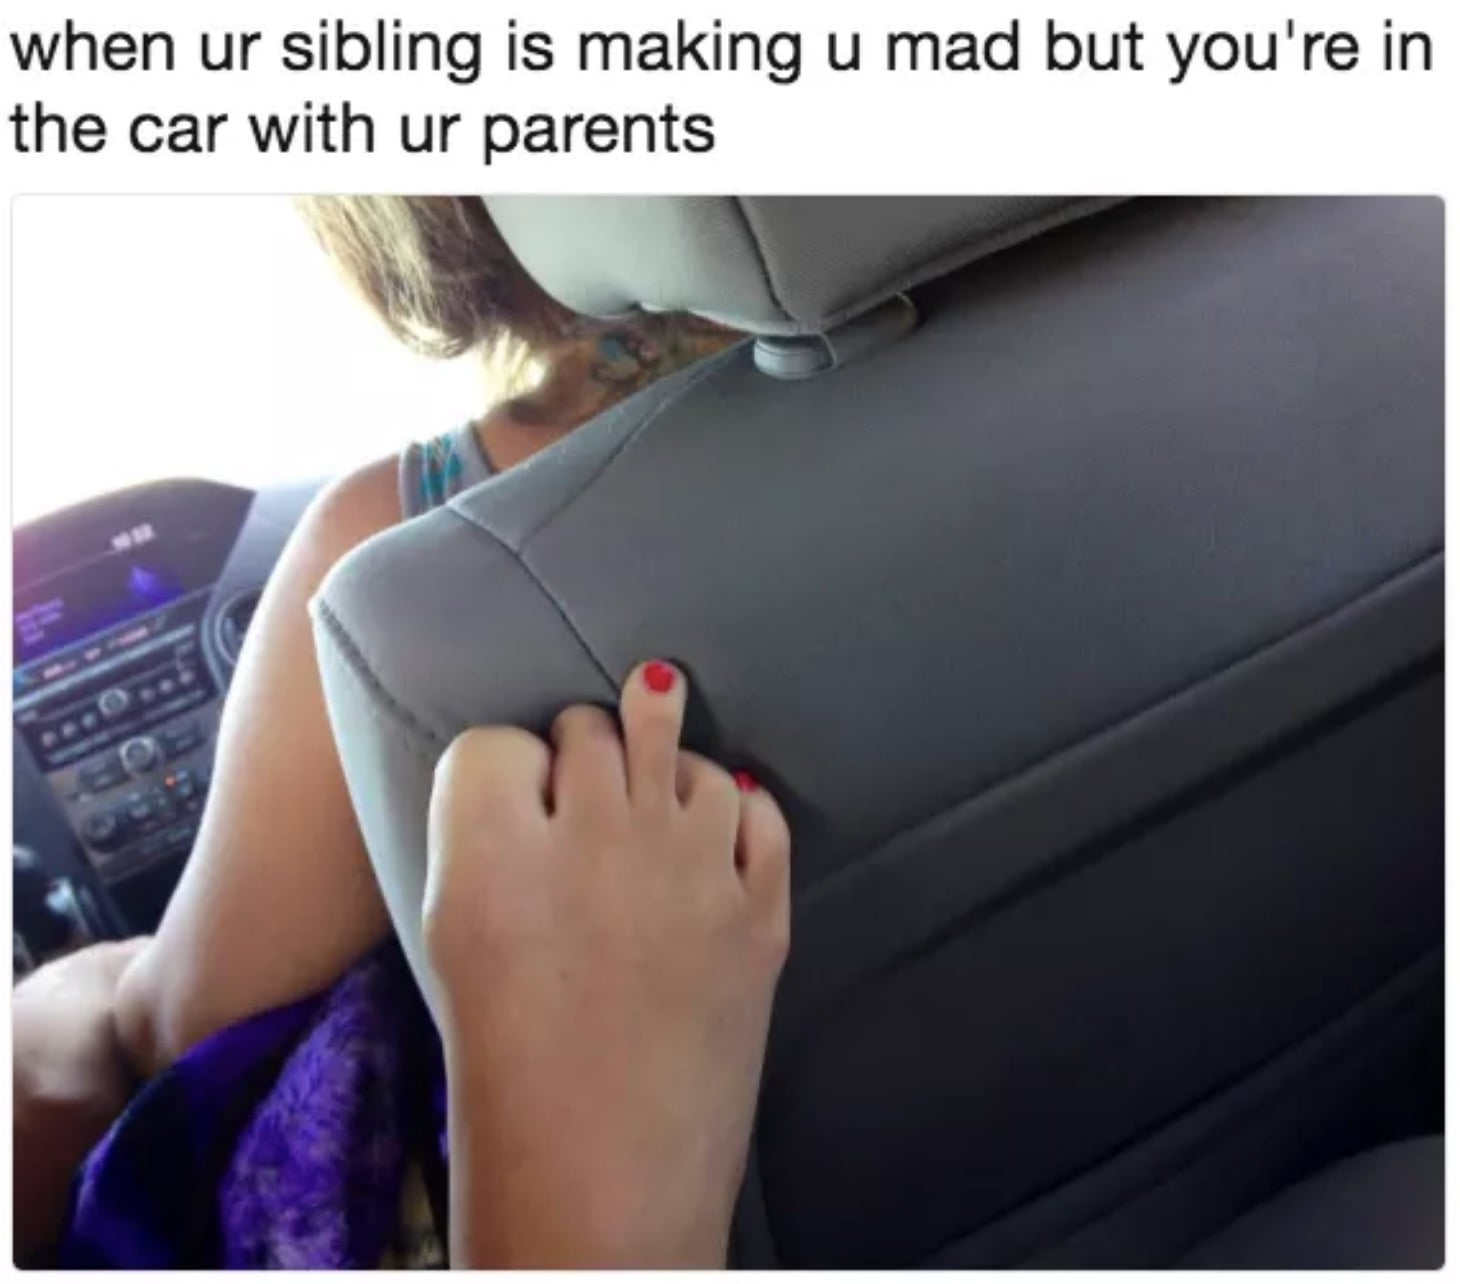 sibling mad